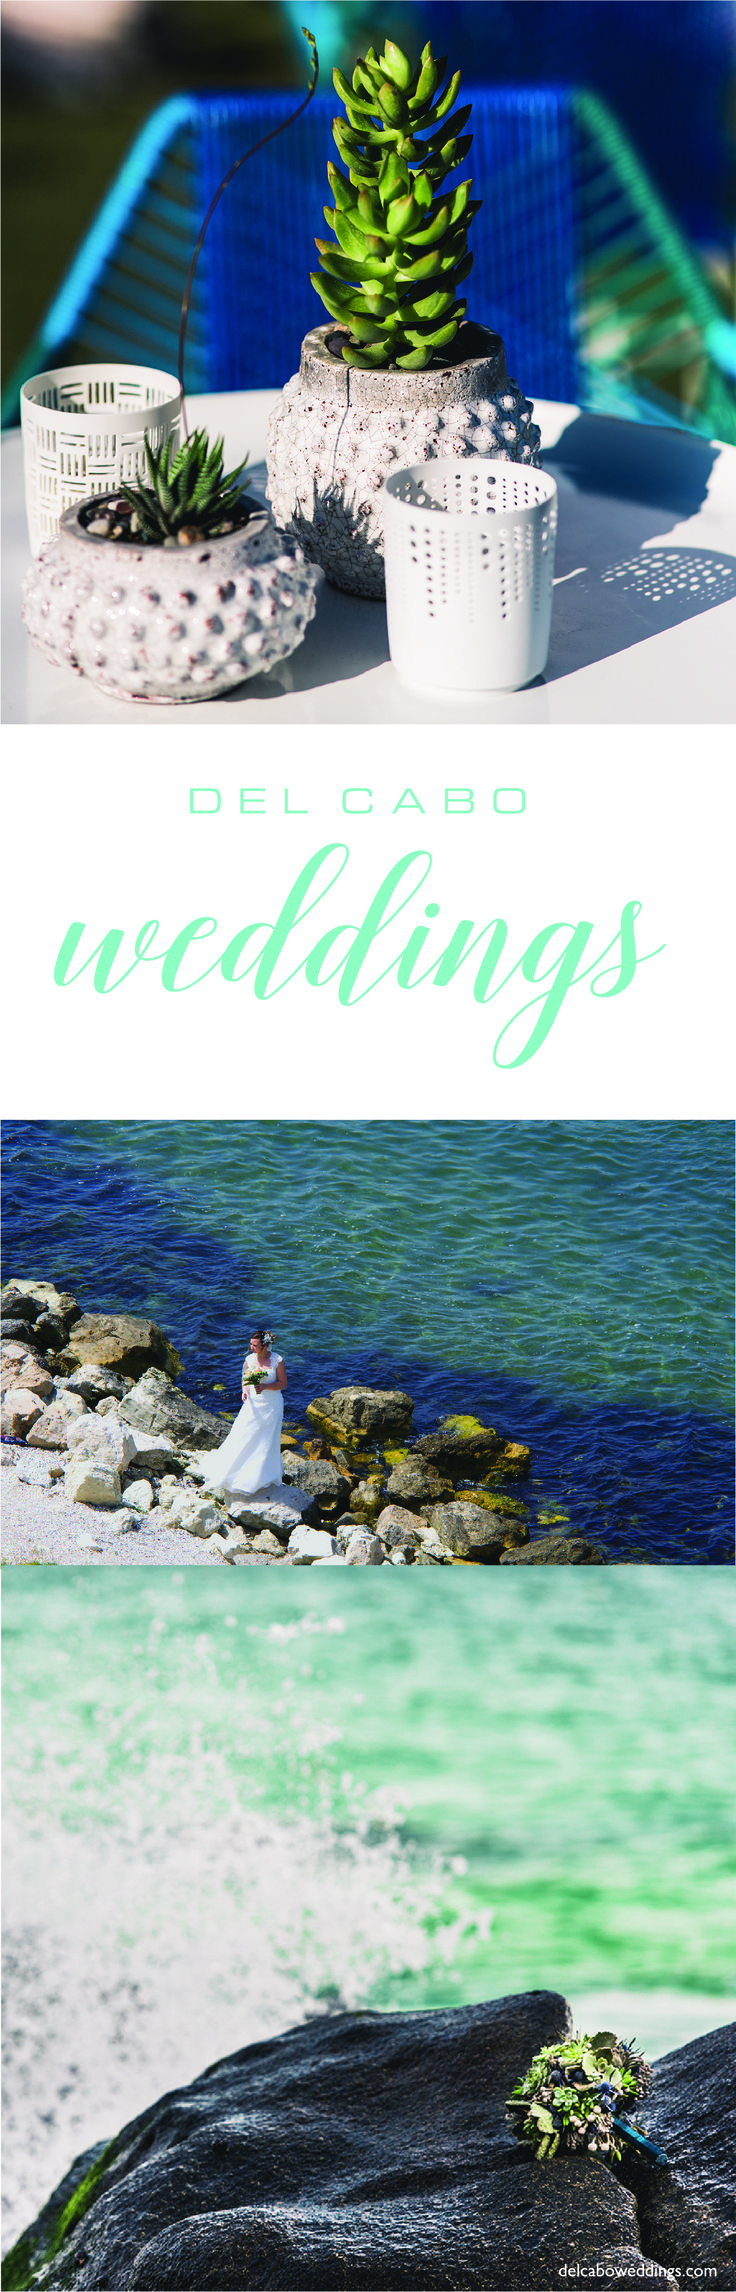 Do you dream with a beach wedding? Check out our board! We have amazing pins that will give you the inspiration and the ideas you need for your Baja beach wedding!  Click on the image and let us help you plan your beach destination wedding in Cabo!